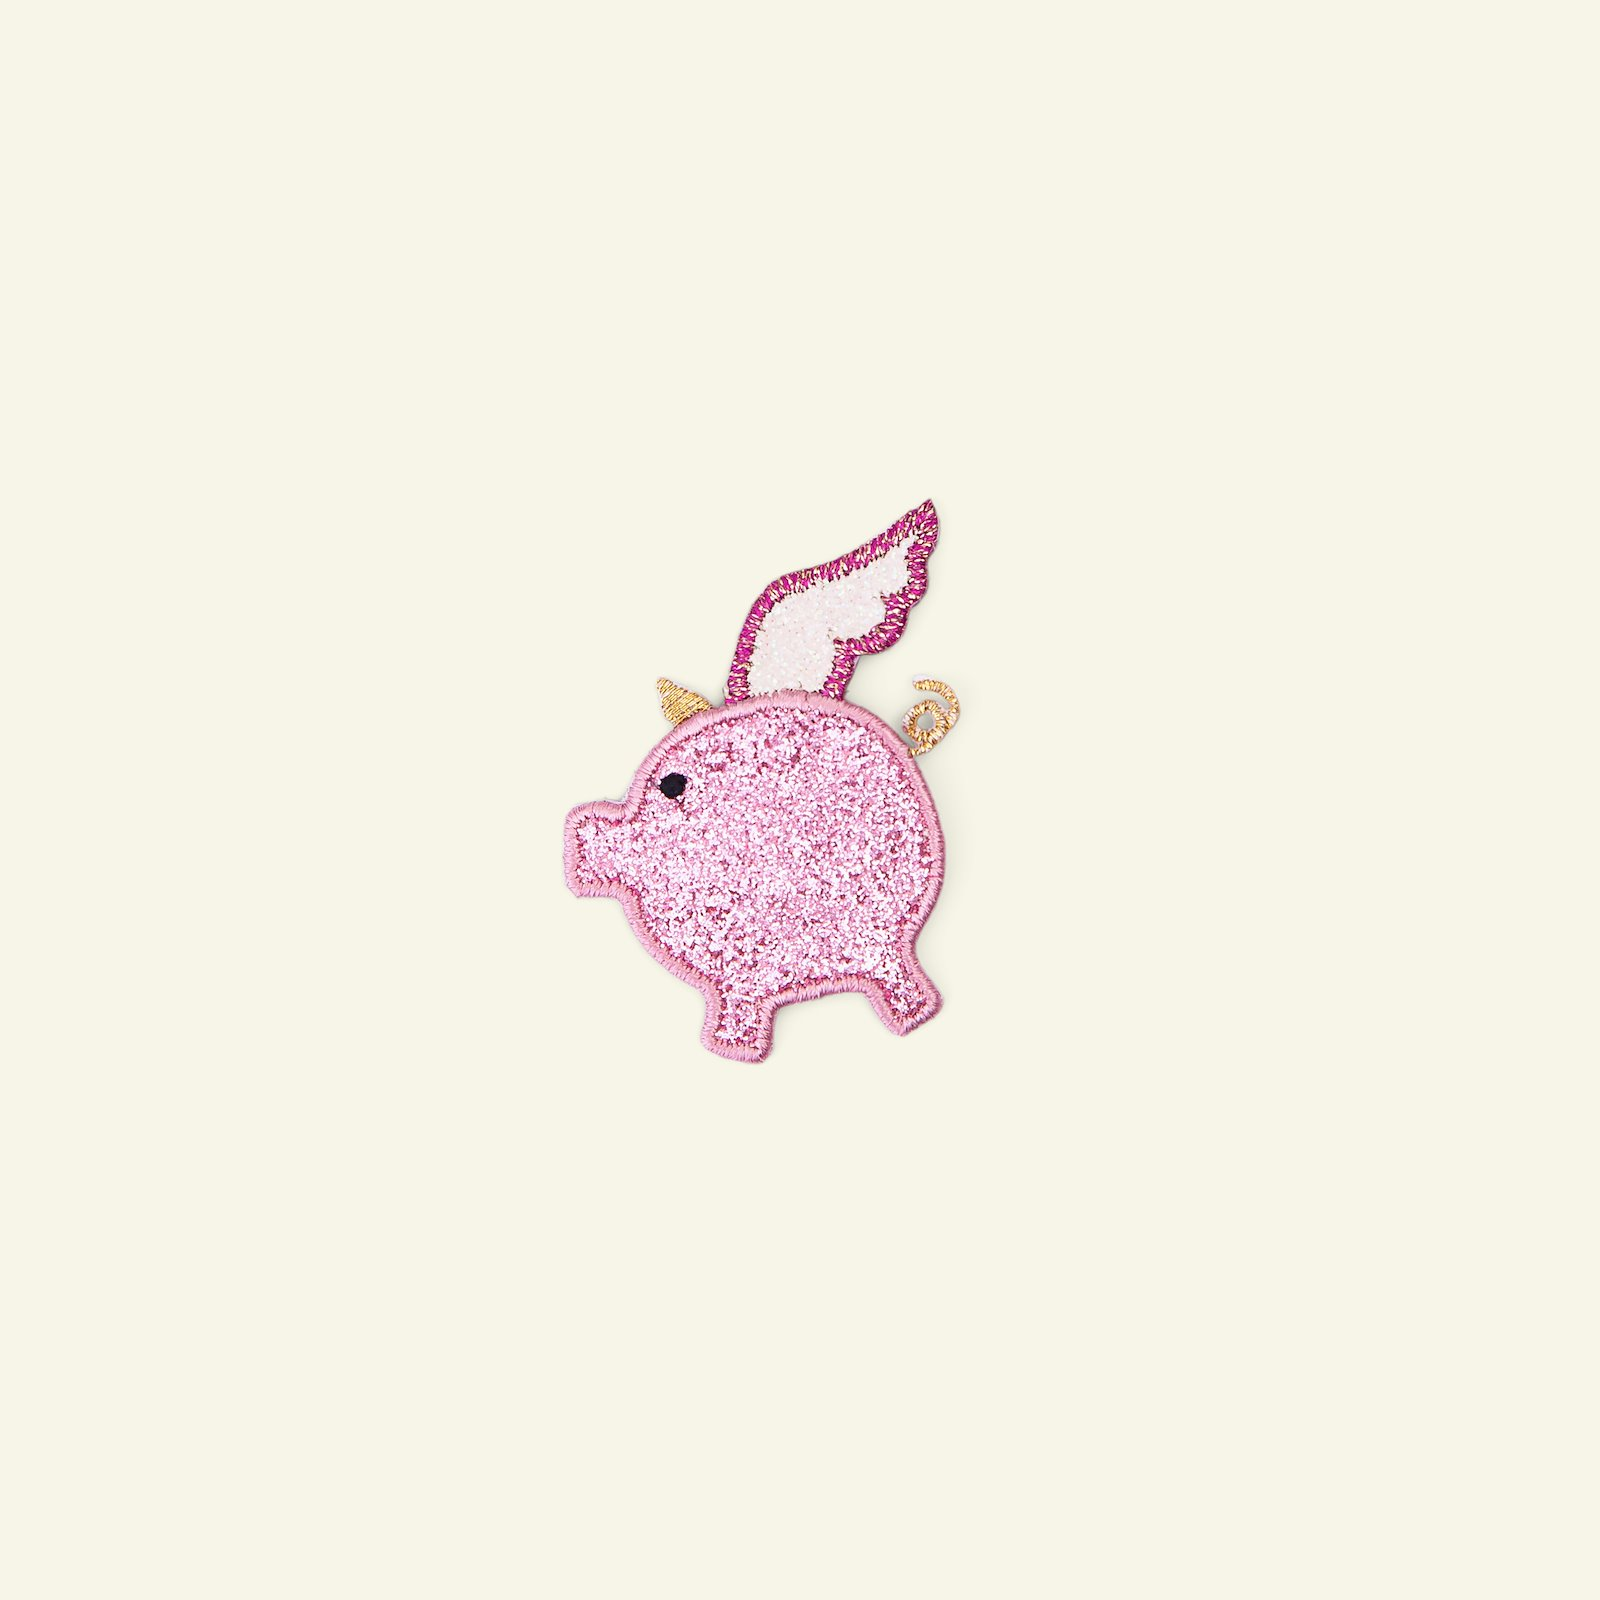 Patch pig 44x48mm pink glitter 1pc 24856_pack